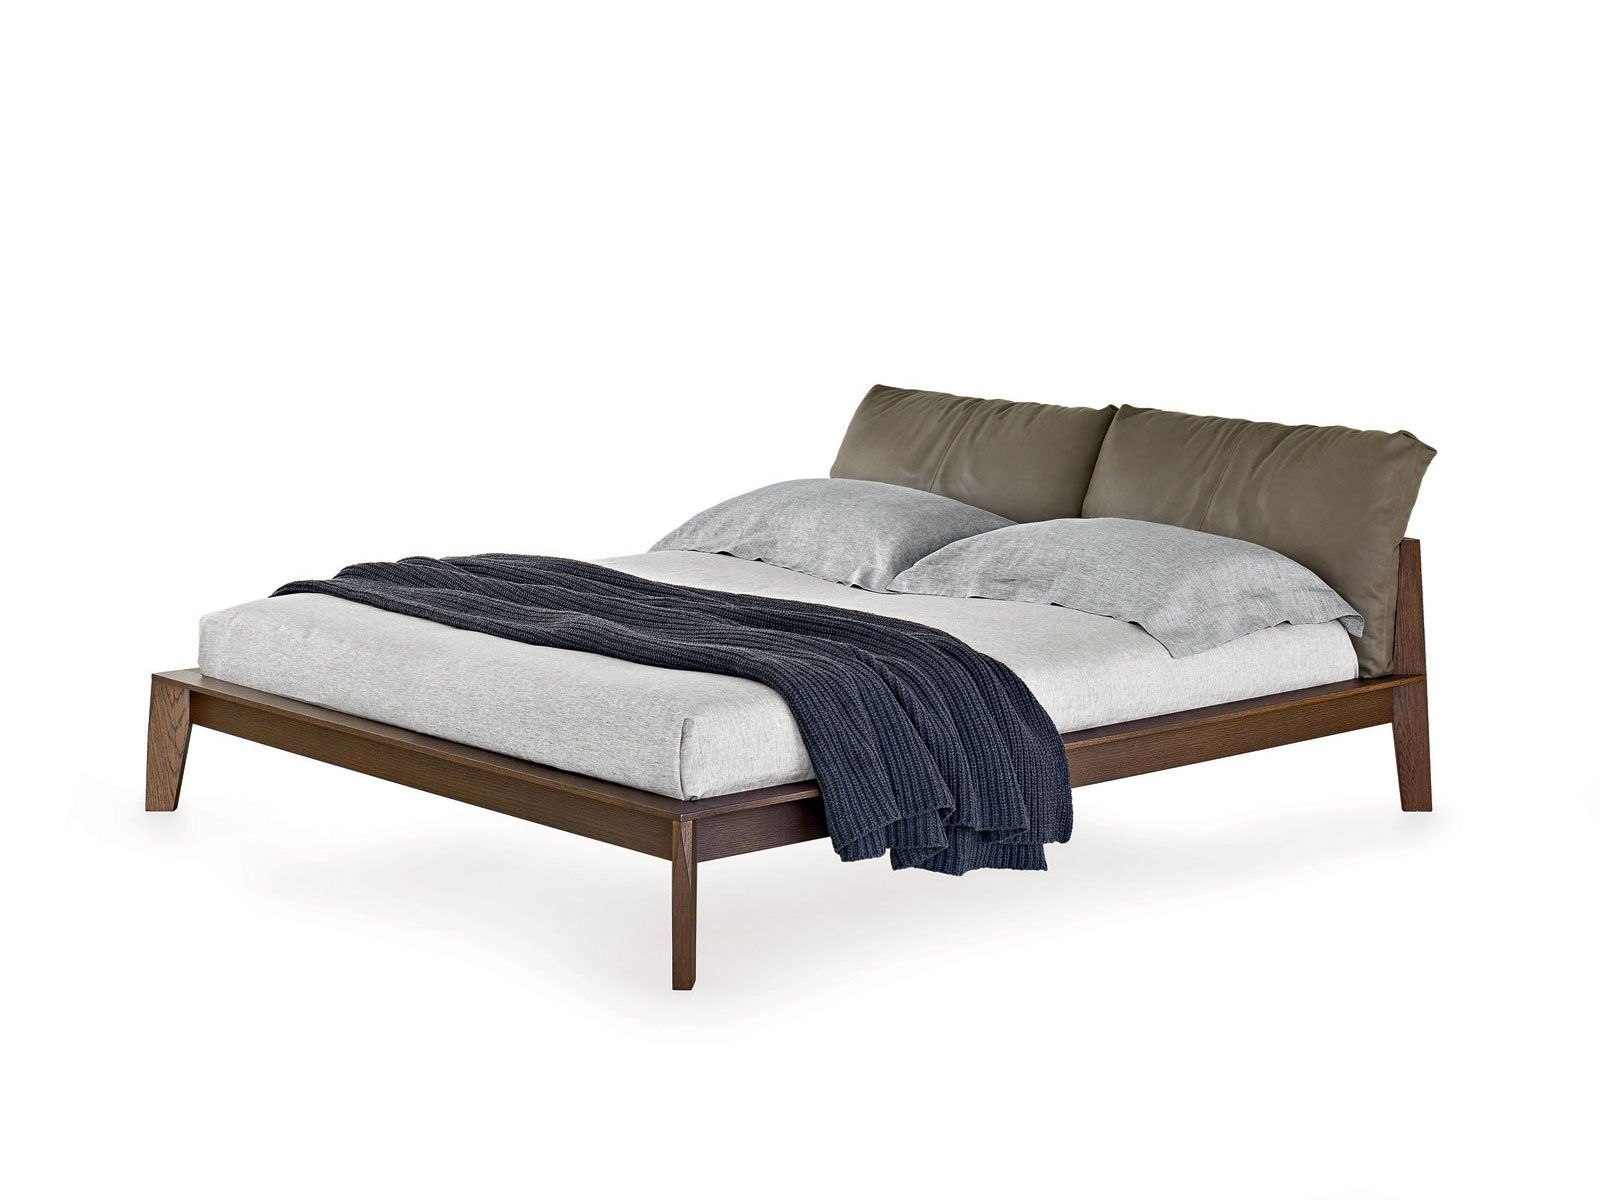 Cama Doble Con Cabecera Tapizada Wish By Molteni C Bedrooms Bed